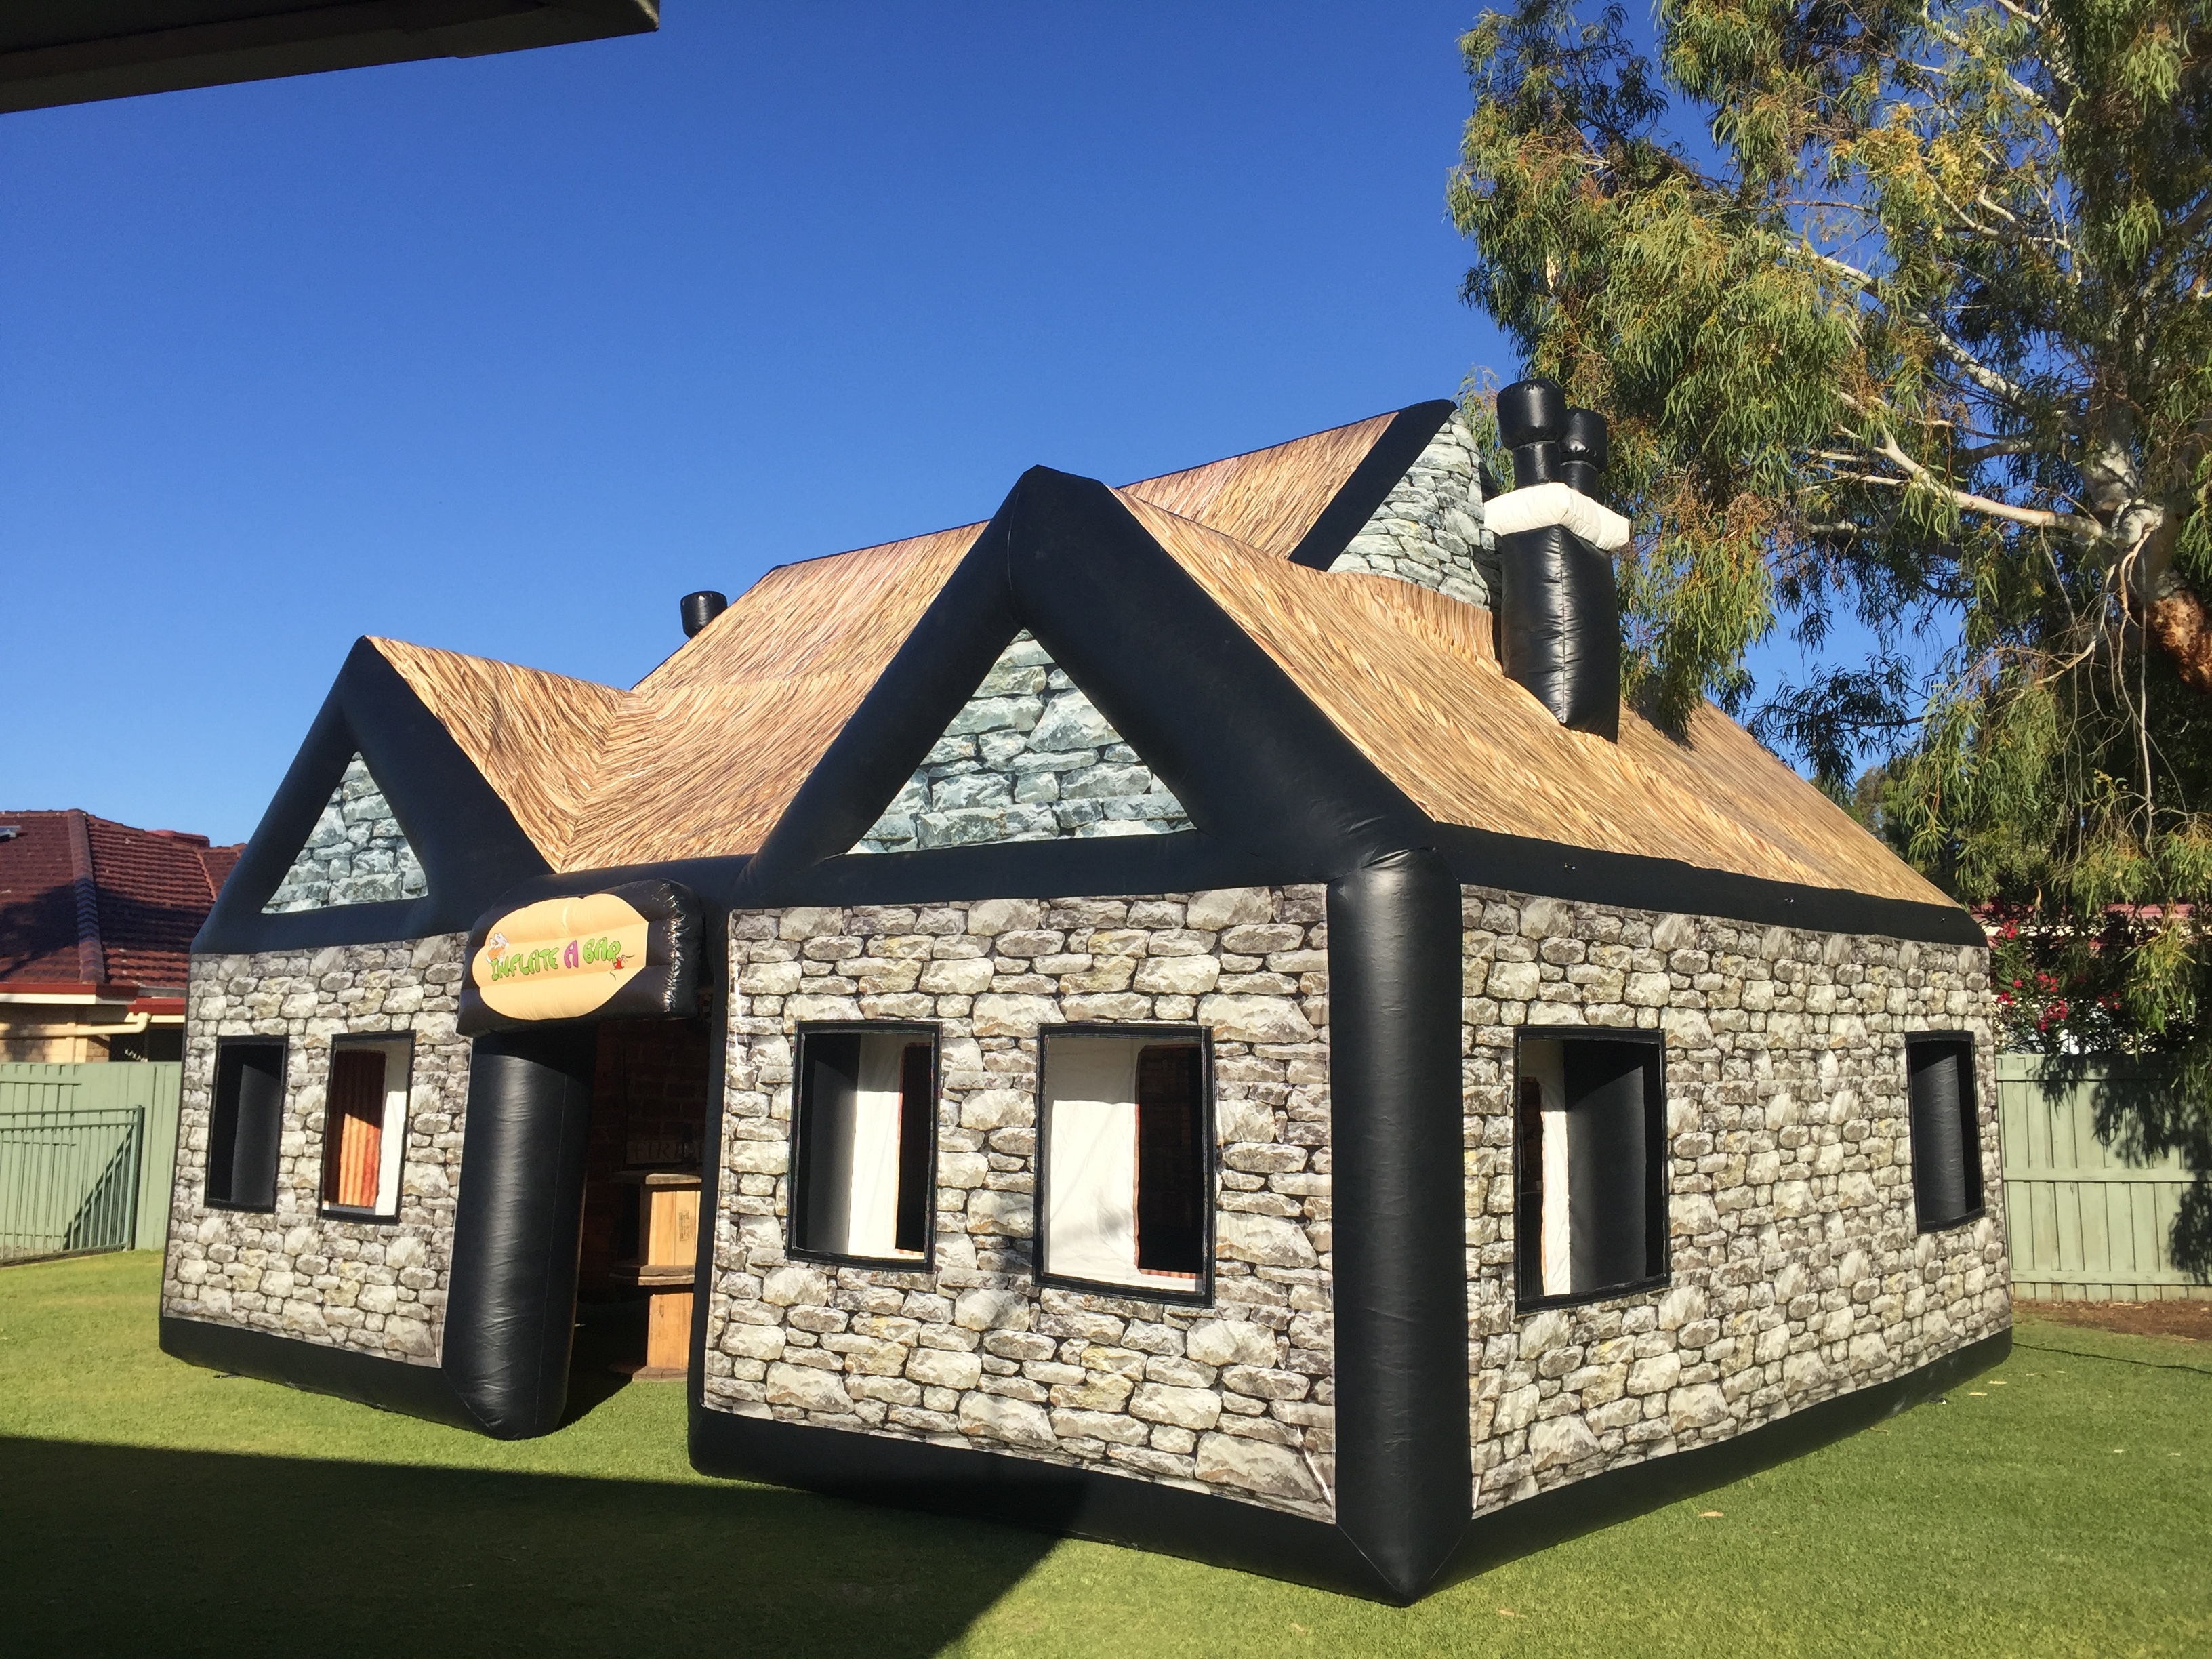 Work Christmas Party Ideas Perth Part - 26: The Inflatable Pub Company, Perth